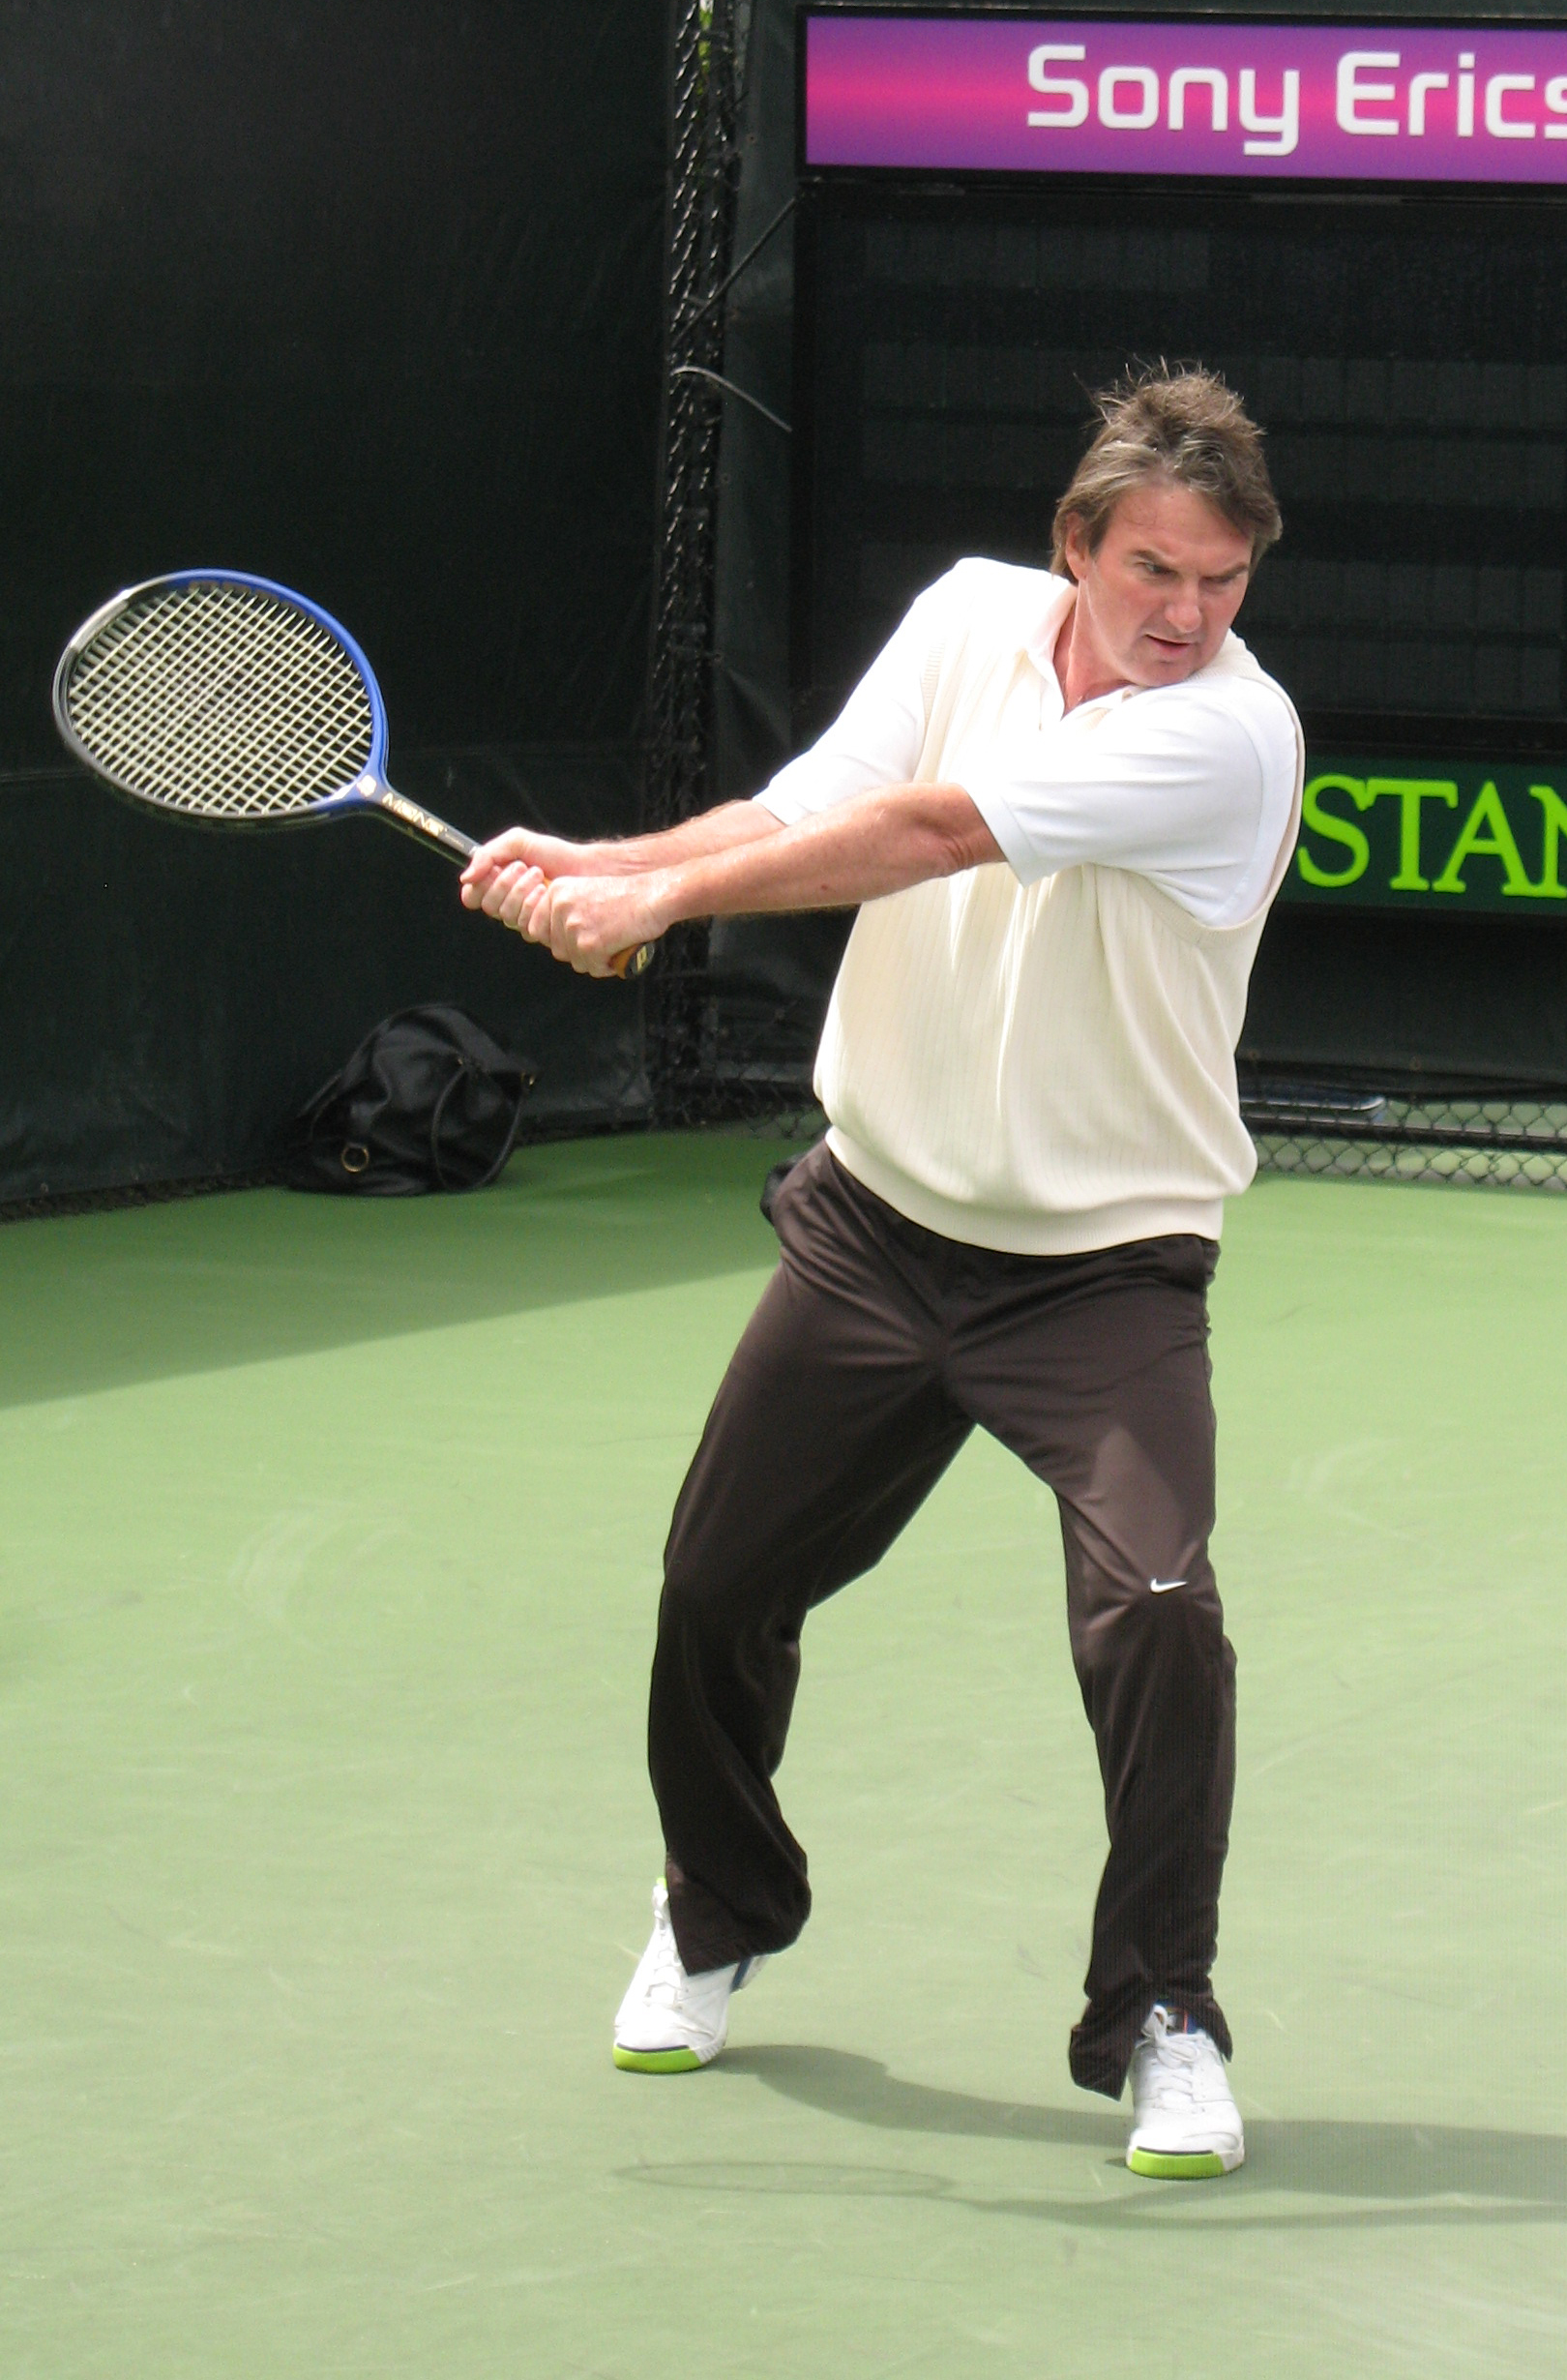 Depiction of Jimmy Connors